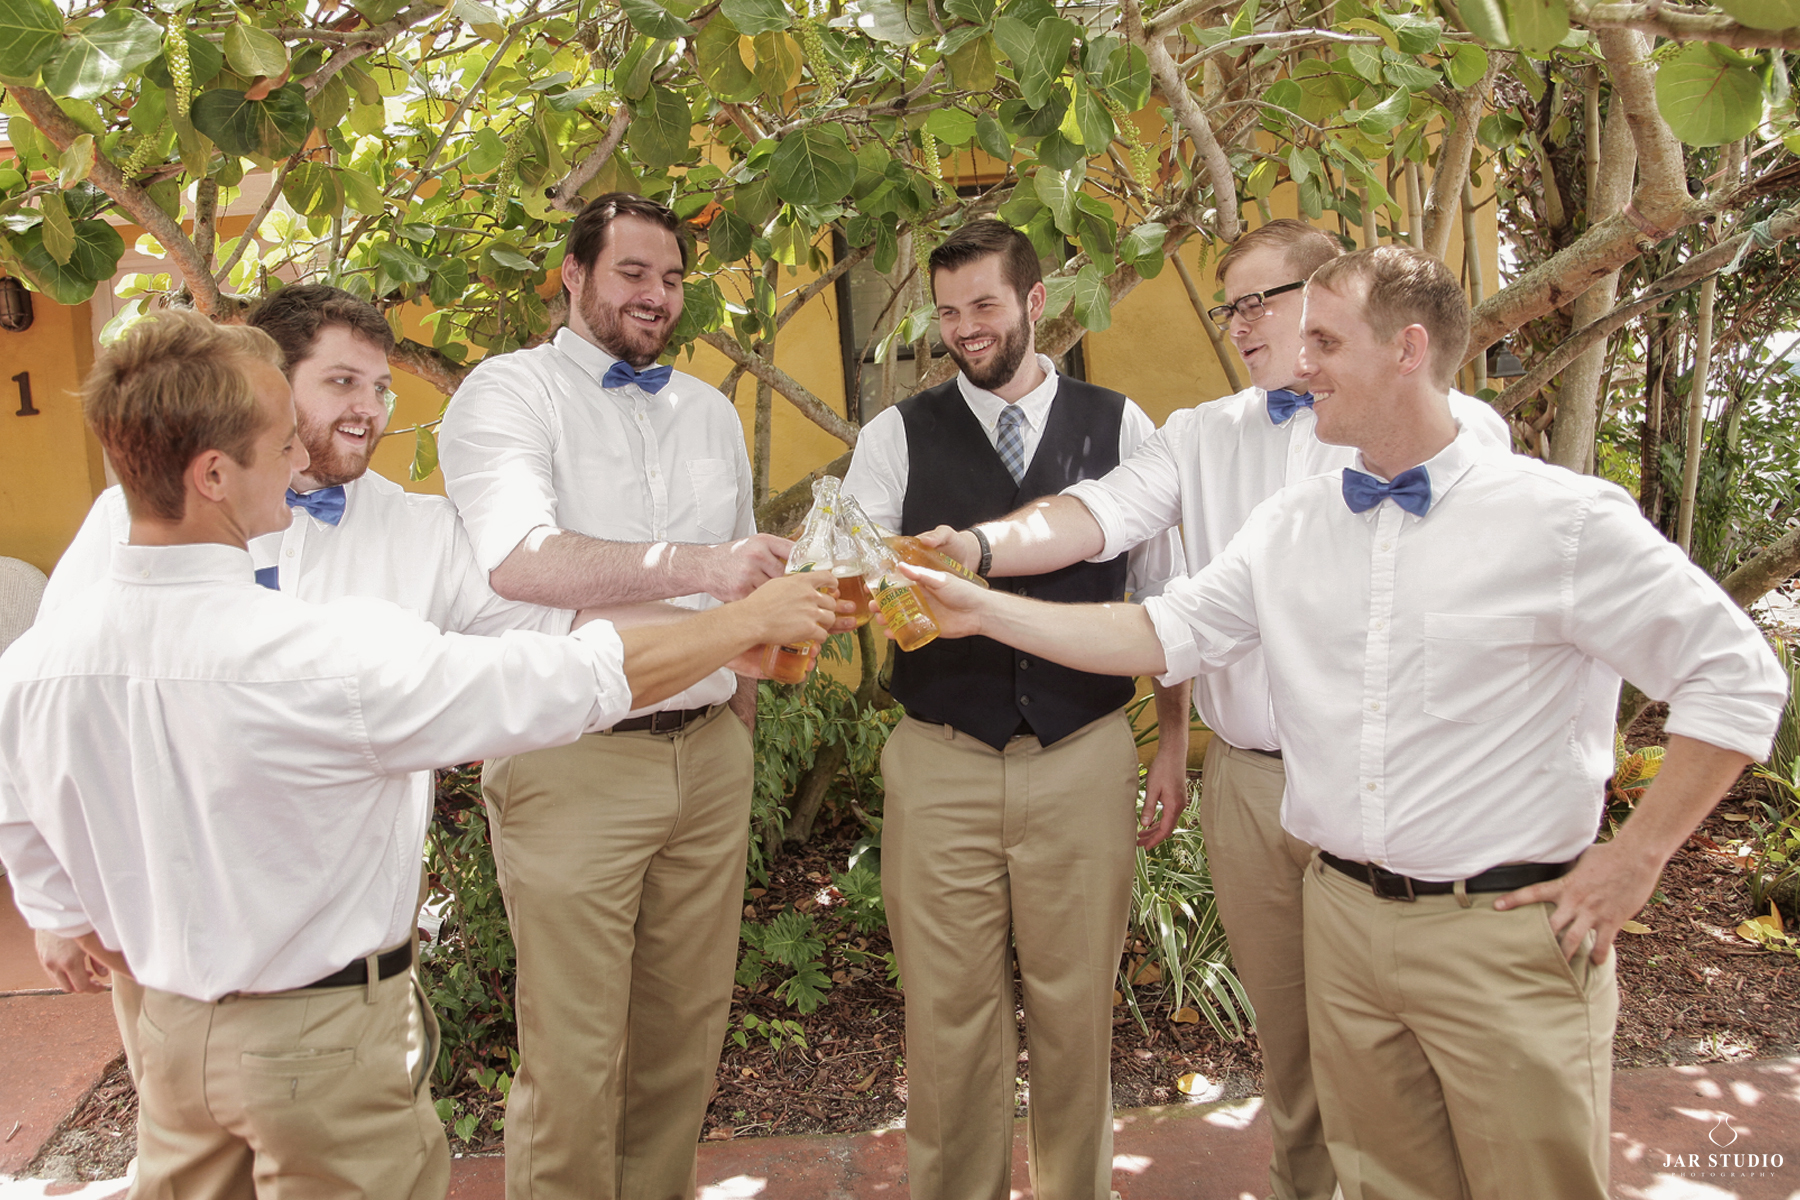 10-fun-groomsmen-groom-orlando-photographer-jaime.JPG